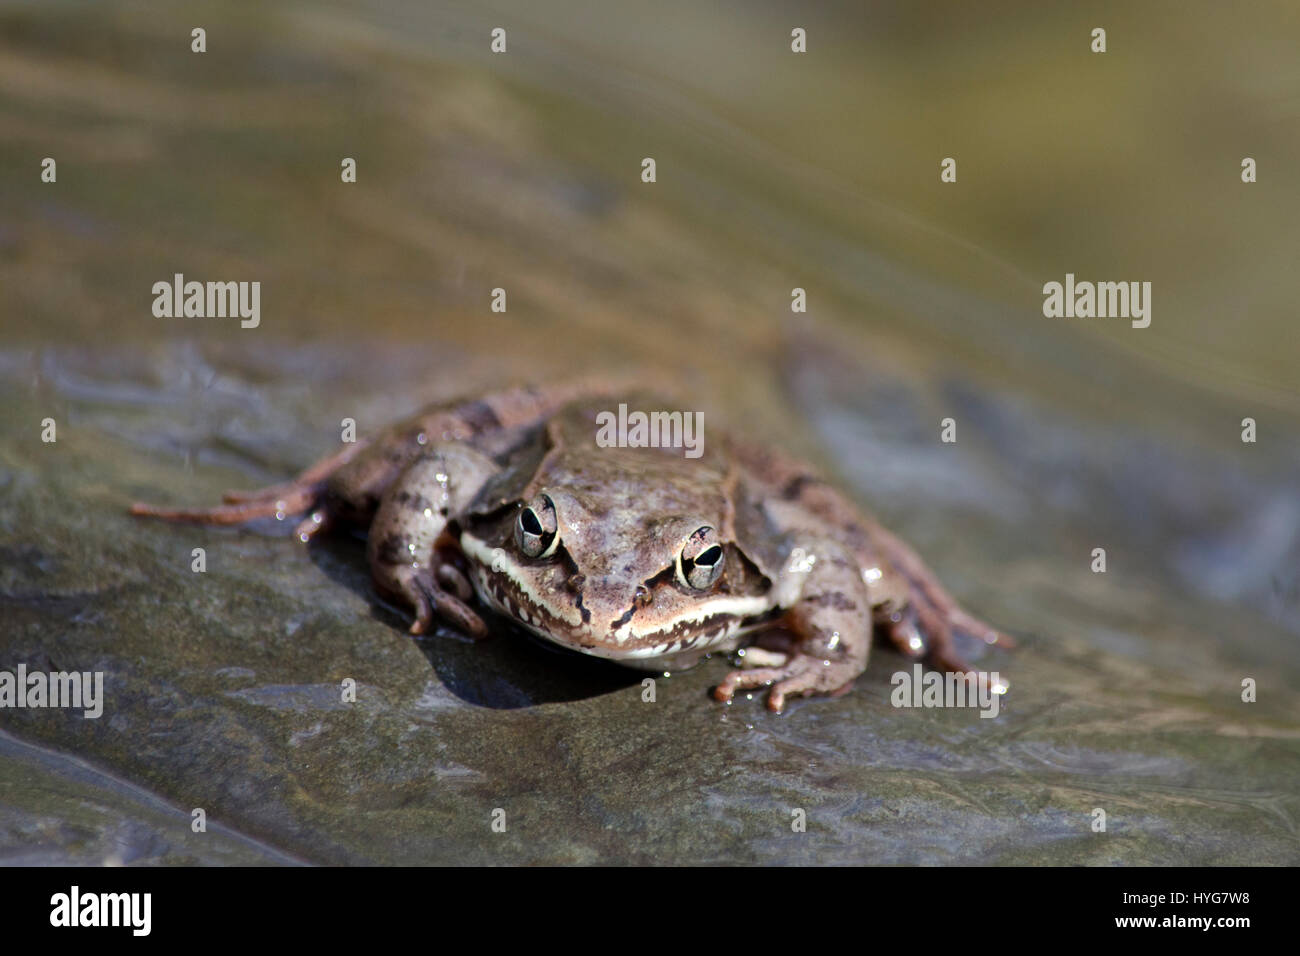 Wood Frog close up front view on rock near pond in central New York, USA. - Stock Image